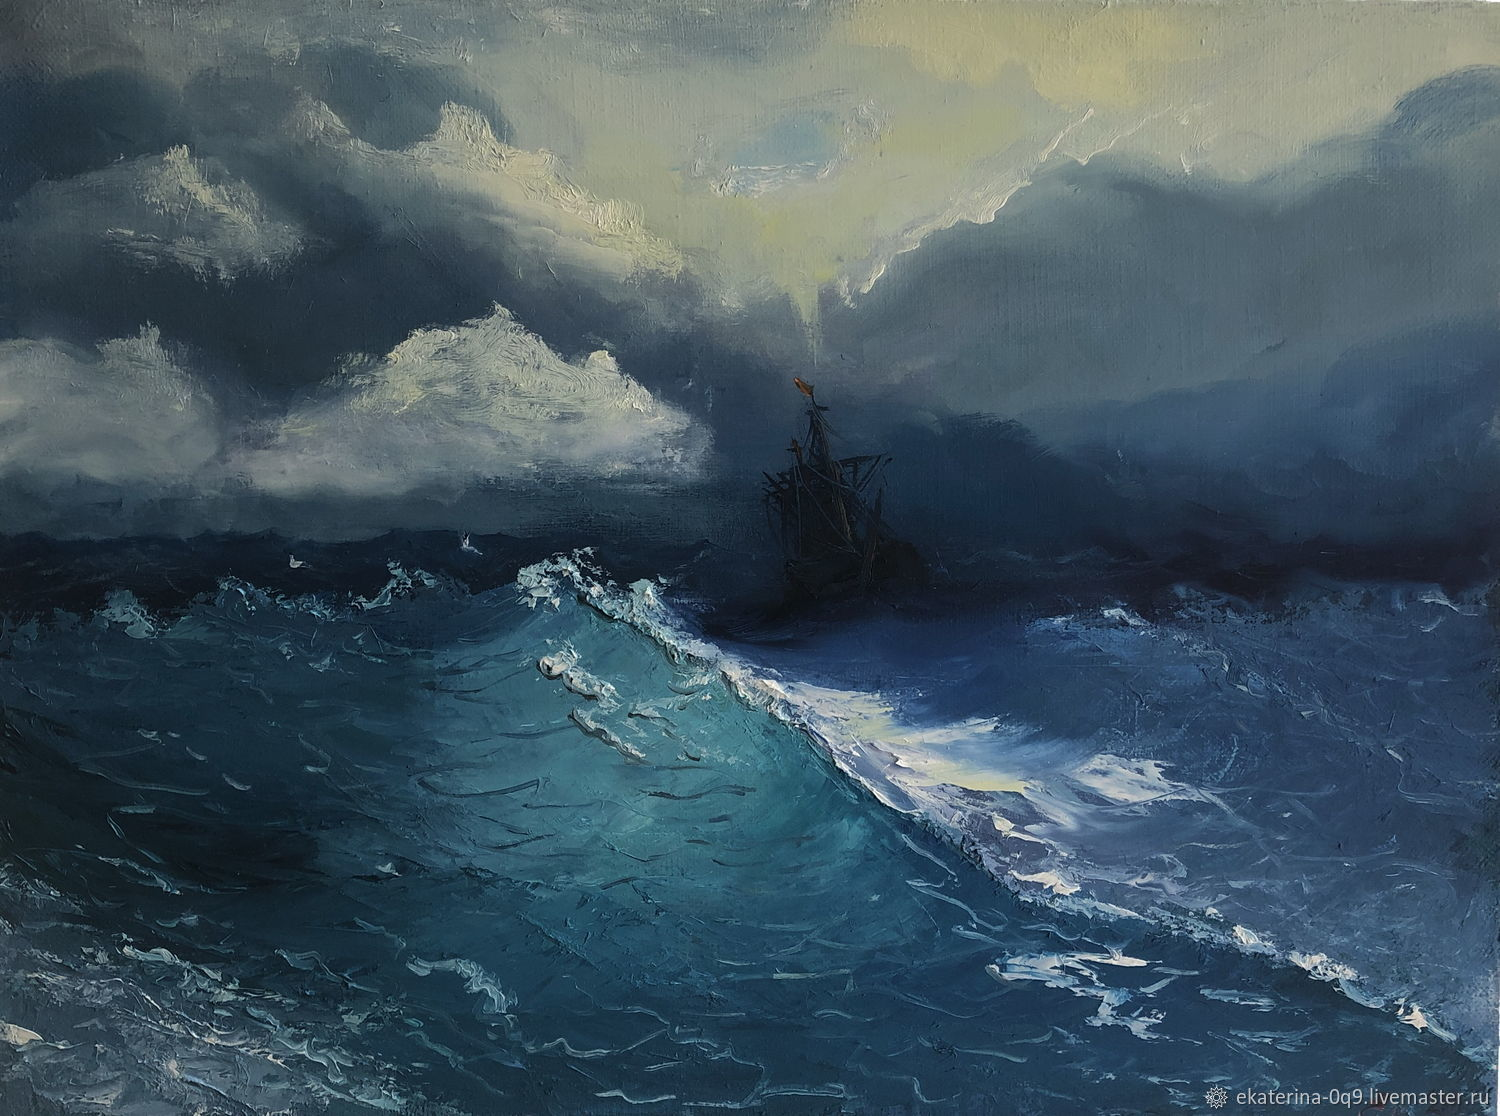 oil painting storm, Pictures, Moscow,  Фото №1